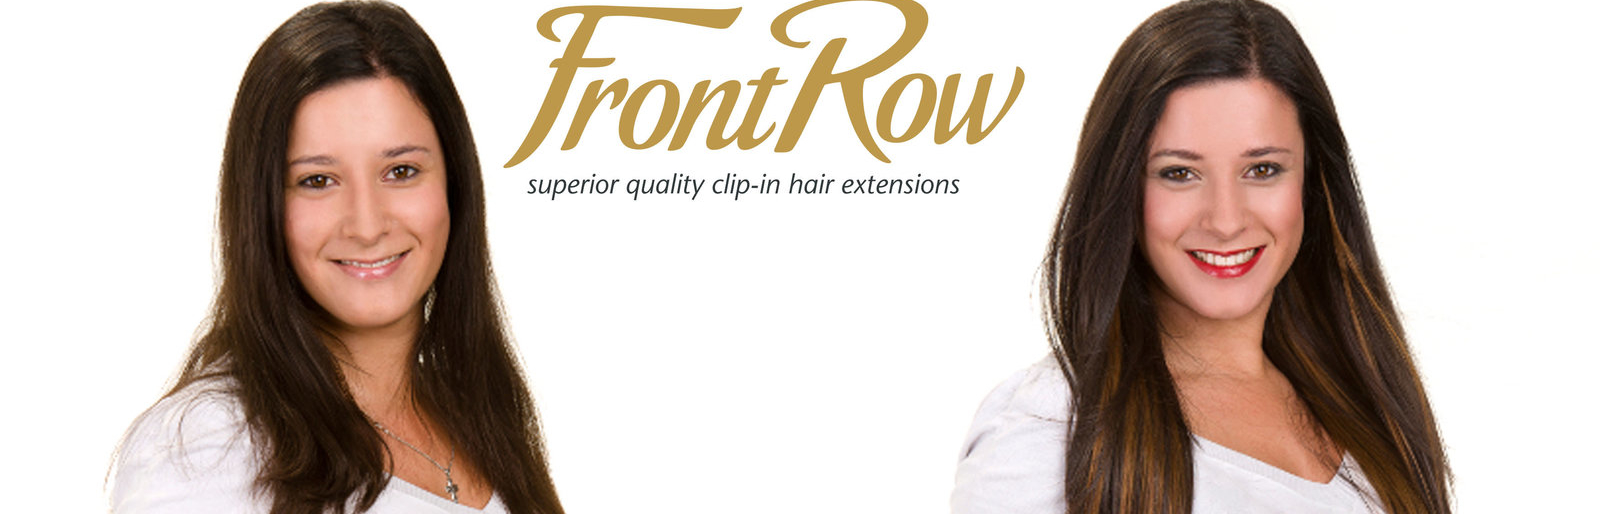 Front Row Clip-in Hair Extensions